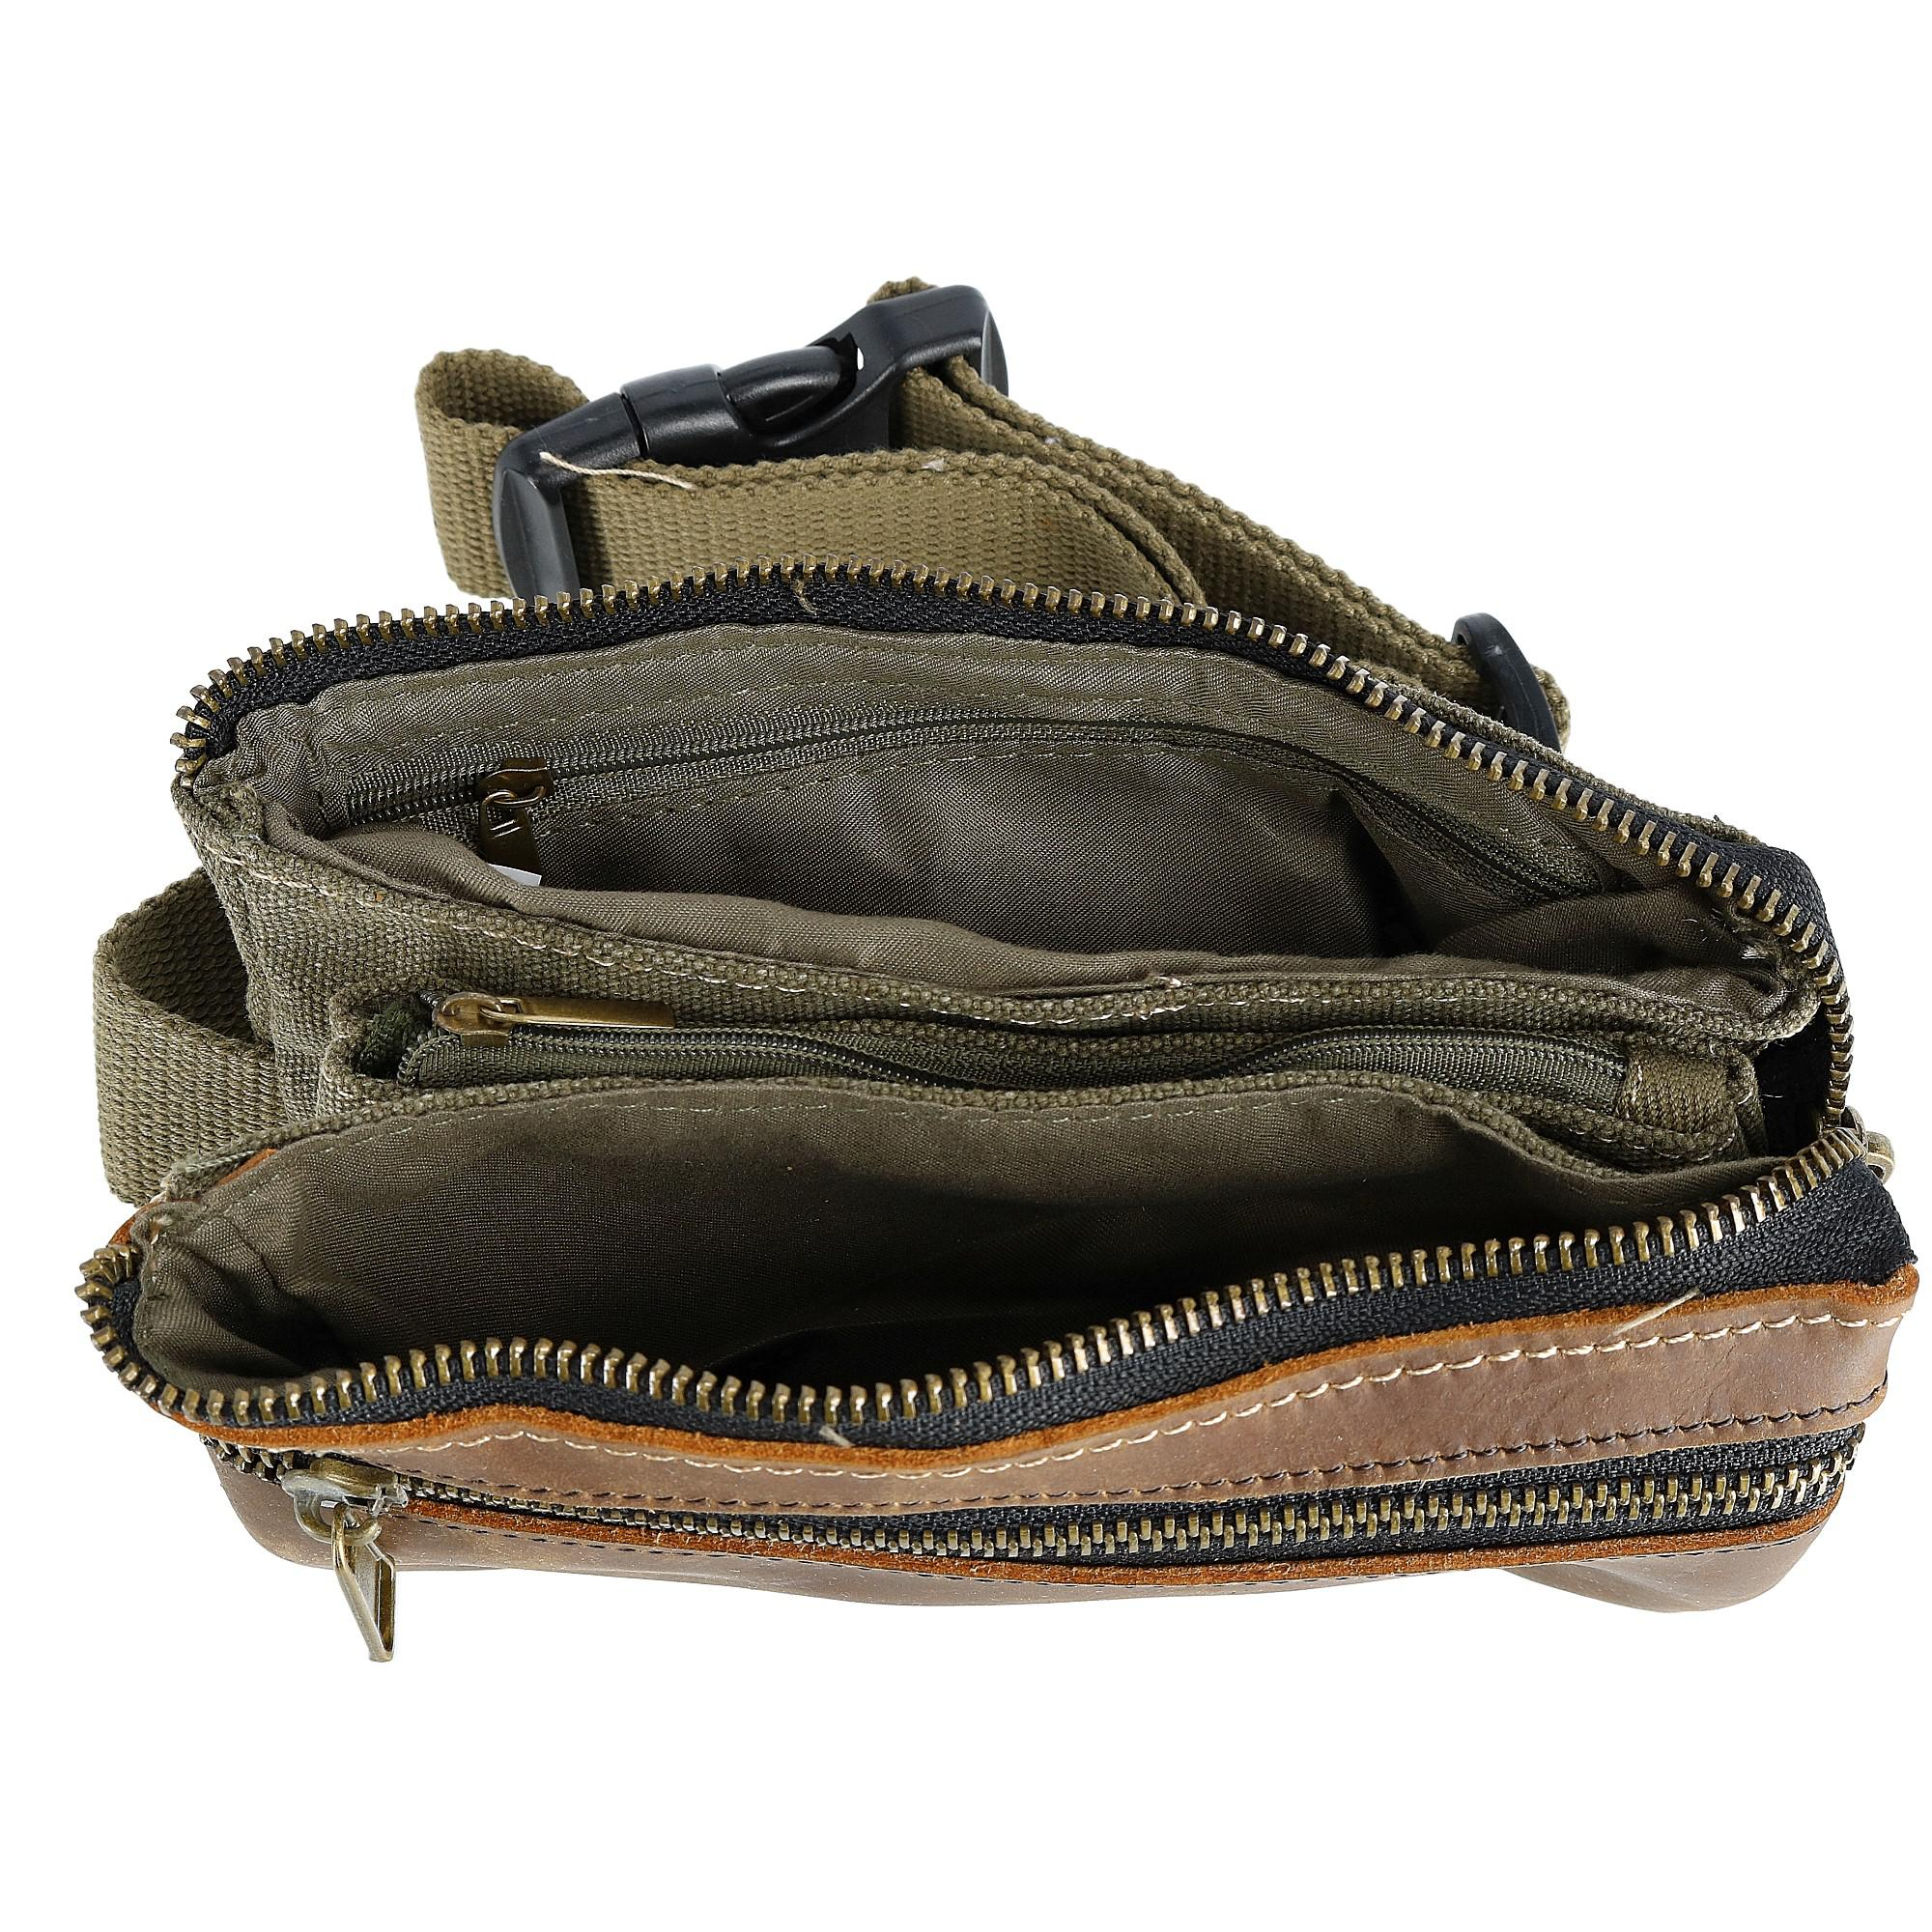 CTM Canvas and Leather Multi Pocket Waist Pack - image 2 of 3